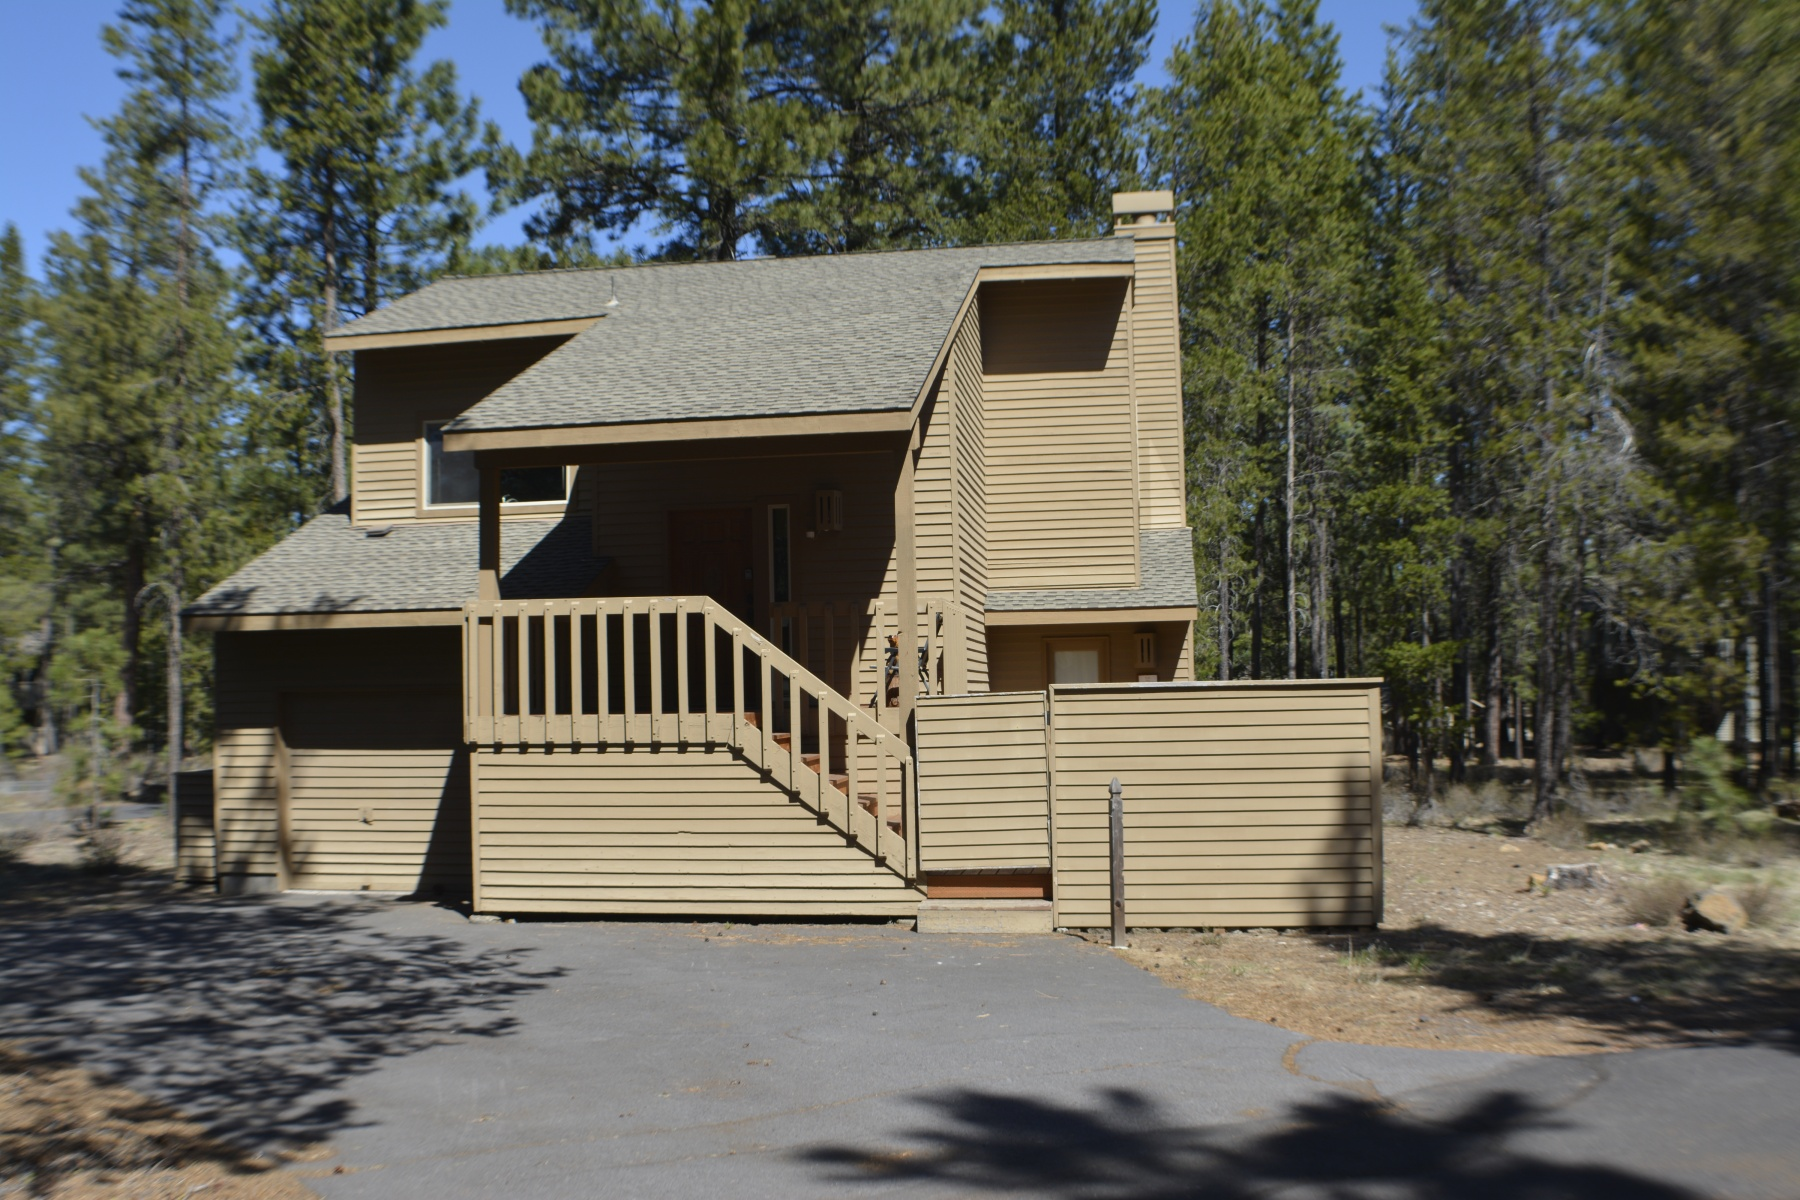 Single Family Home for Sale at Newly Upldated Sunriver Home 1 Butternut Ln Sunriver, Oregon, 97707 United States